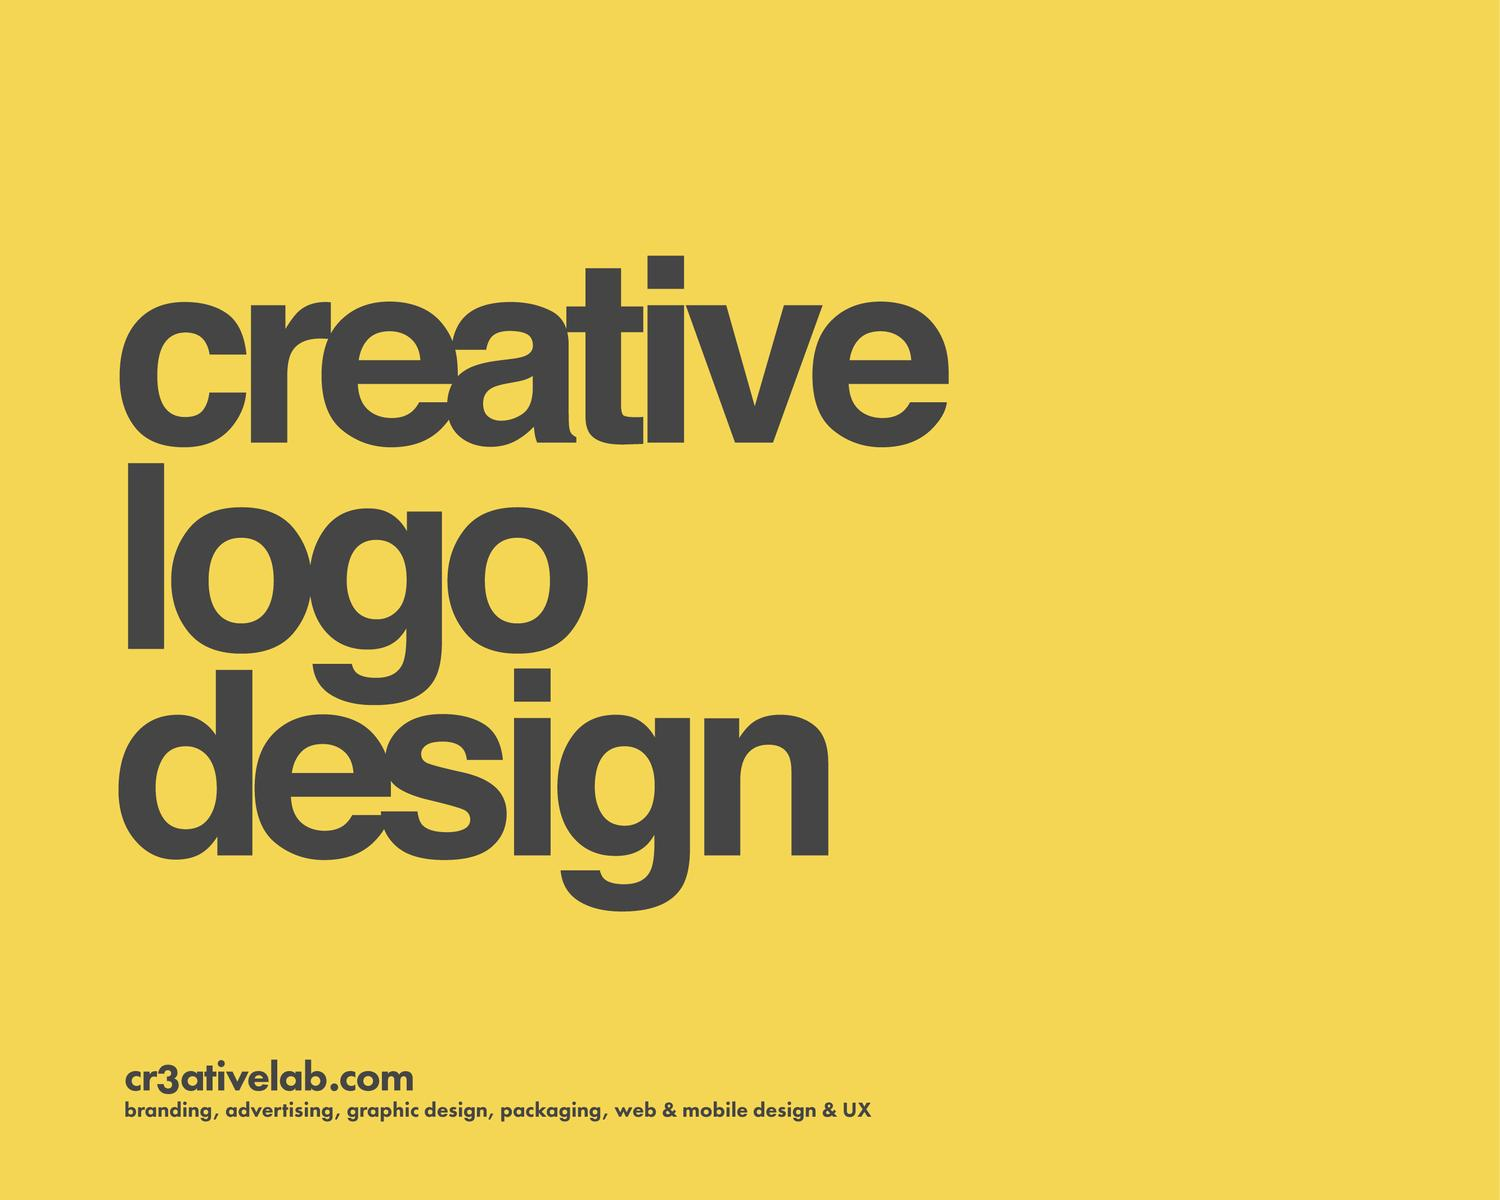 Creative Logo Design by cr3ativelab - 103000